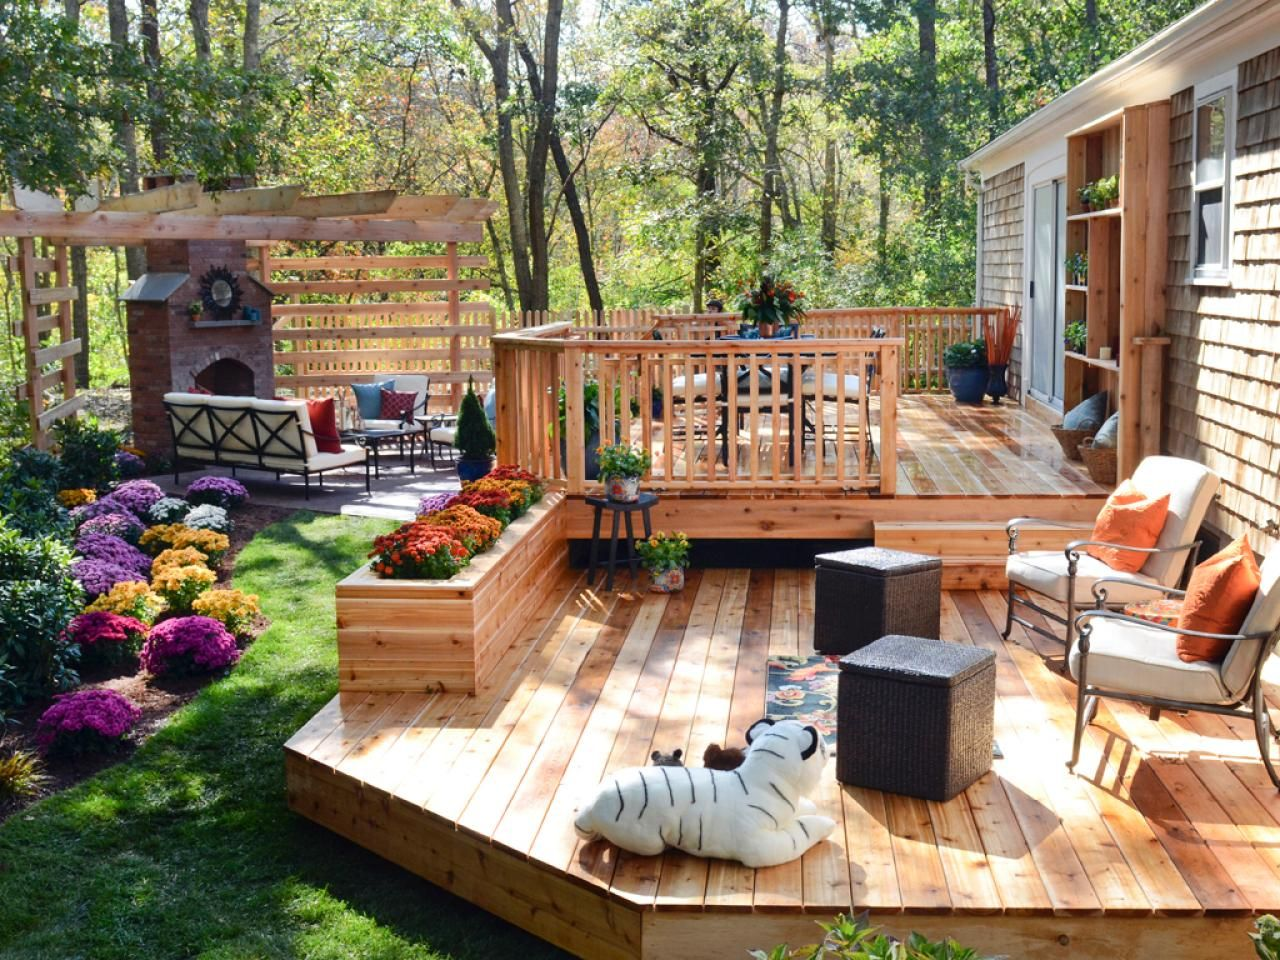 15 before-and-after backyard makeovers | hgtv, backyard and yards - Multi Level Patio Designs